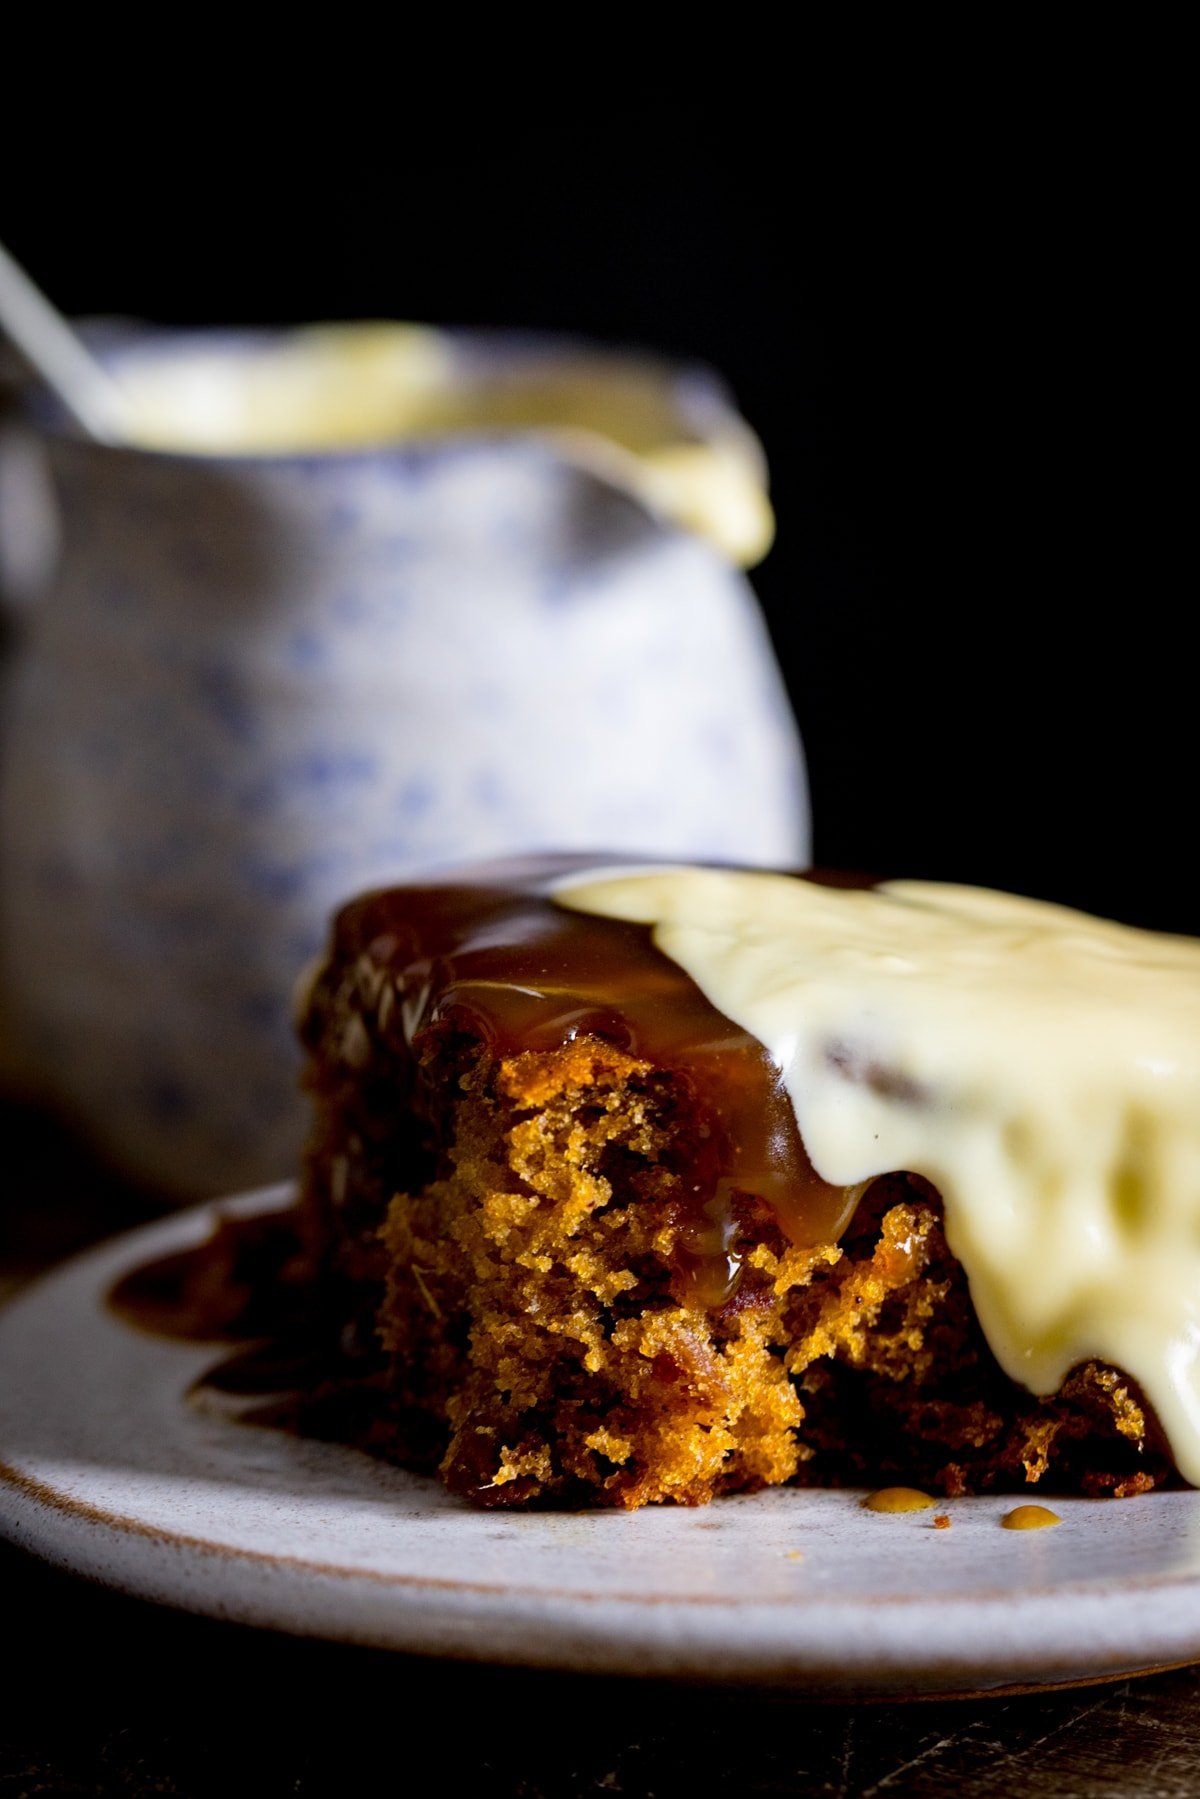 Piece of sticky toffee pudding on a plate, topped with custard. Jug of custard in the background.